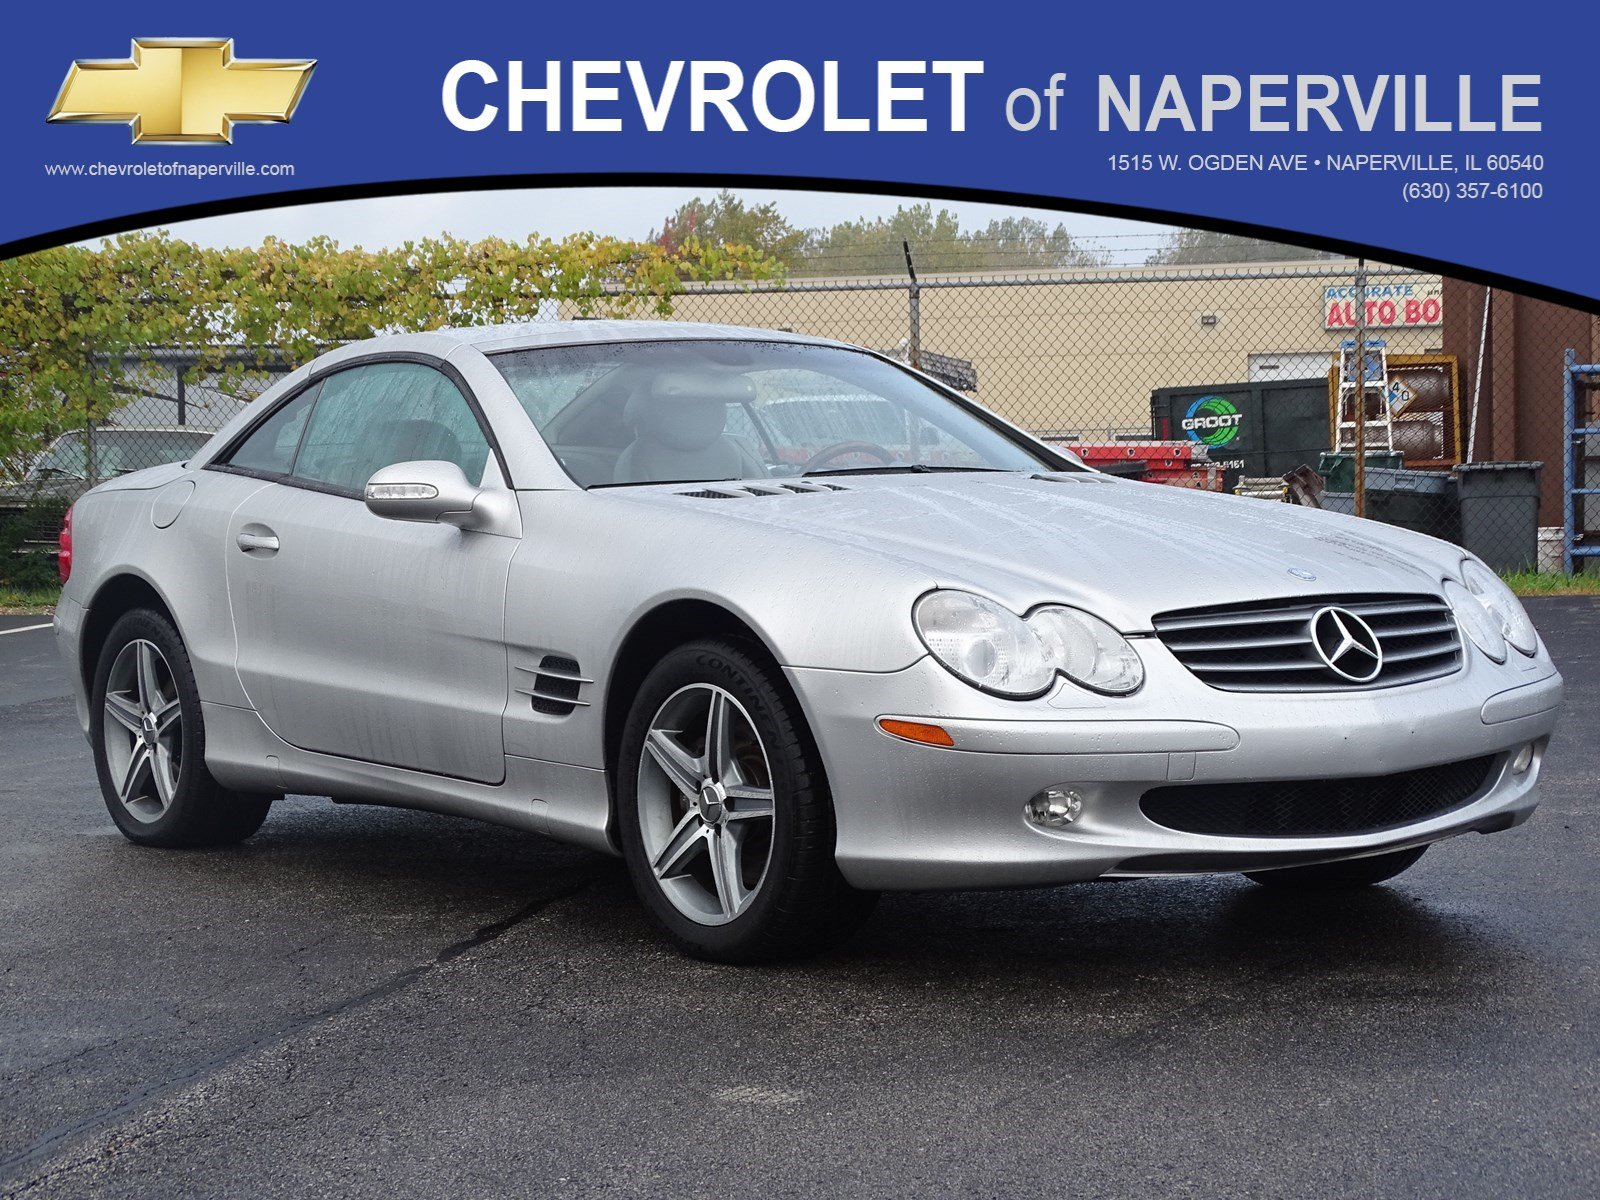 Pre Owned 2003 Mercedes Benz SL Class SL 500 Convertible in